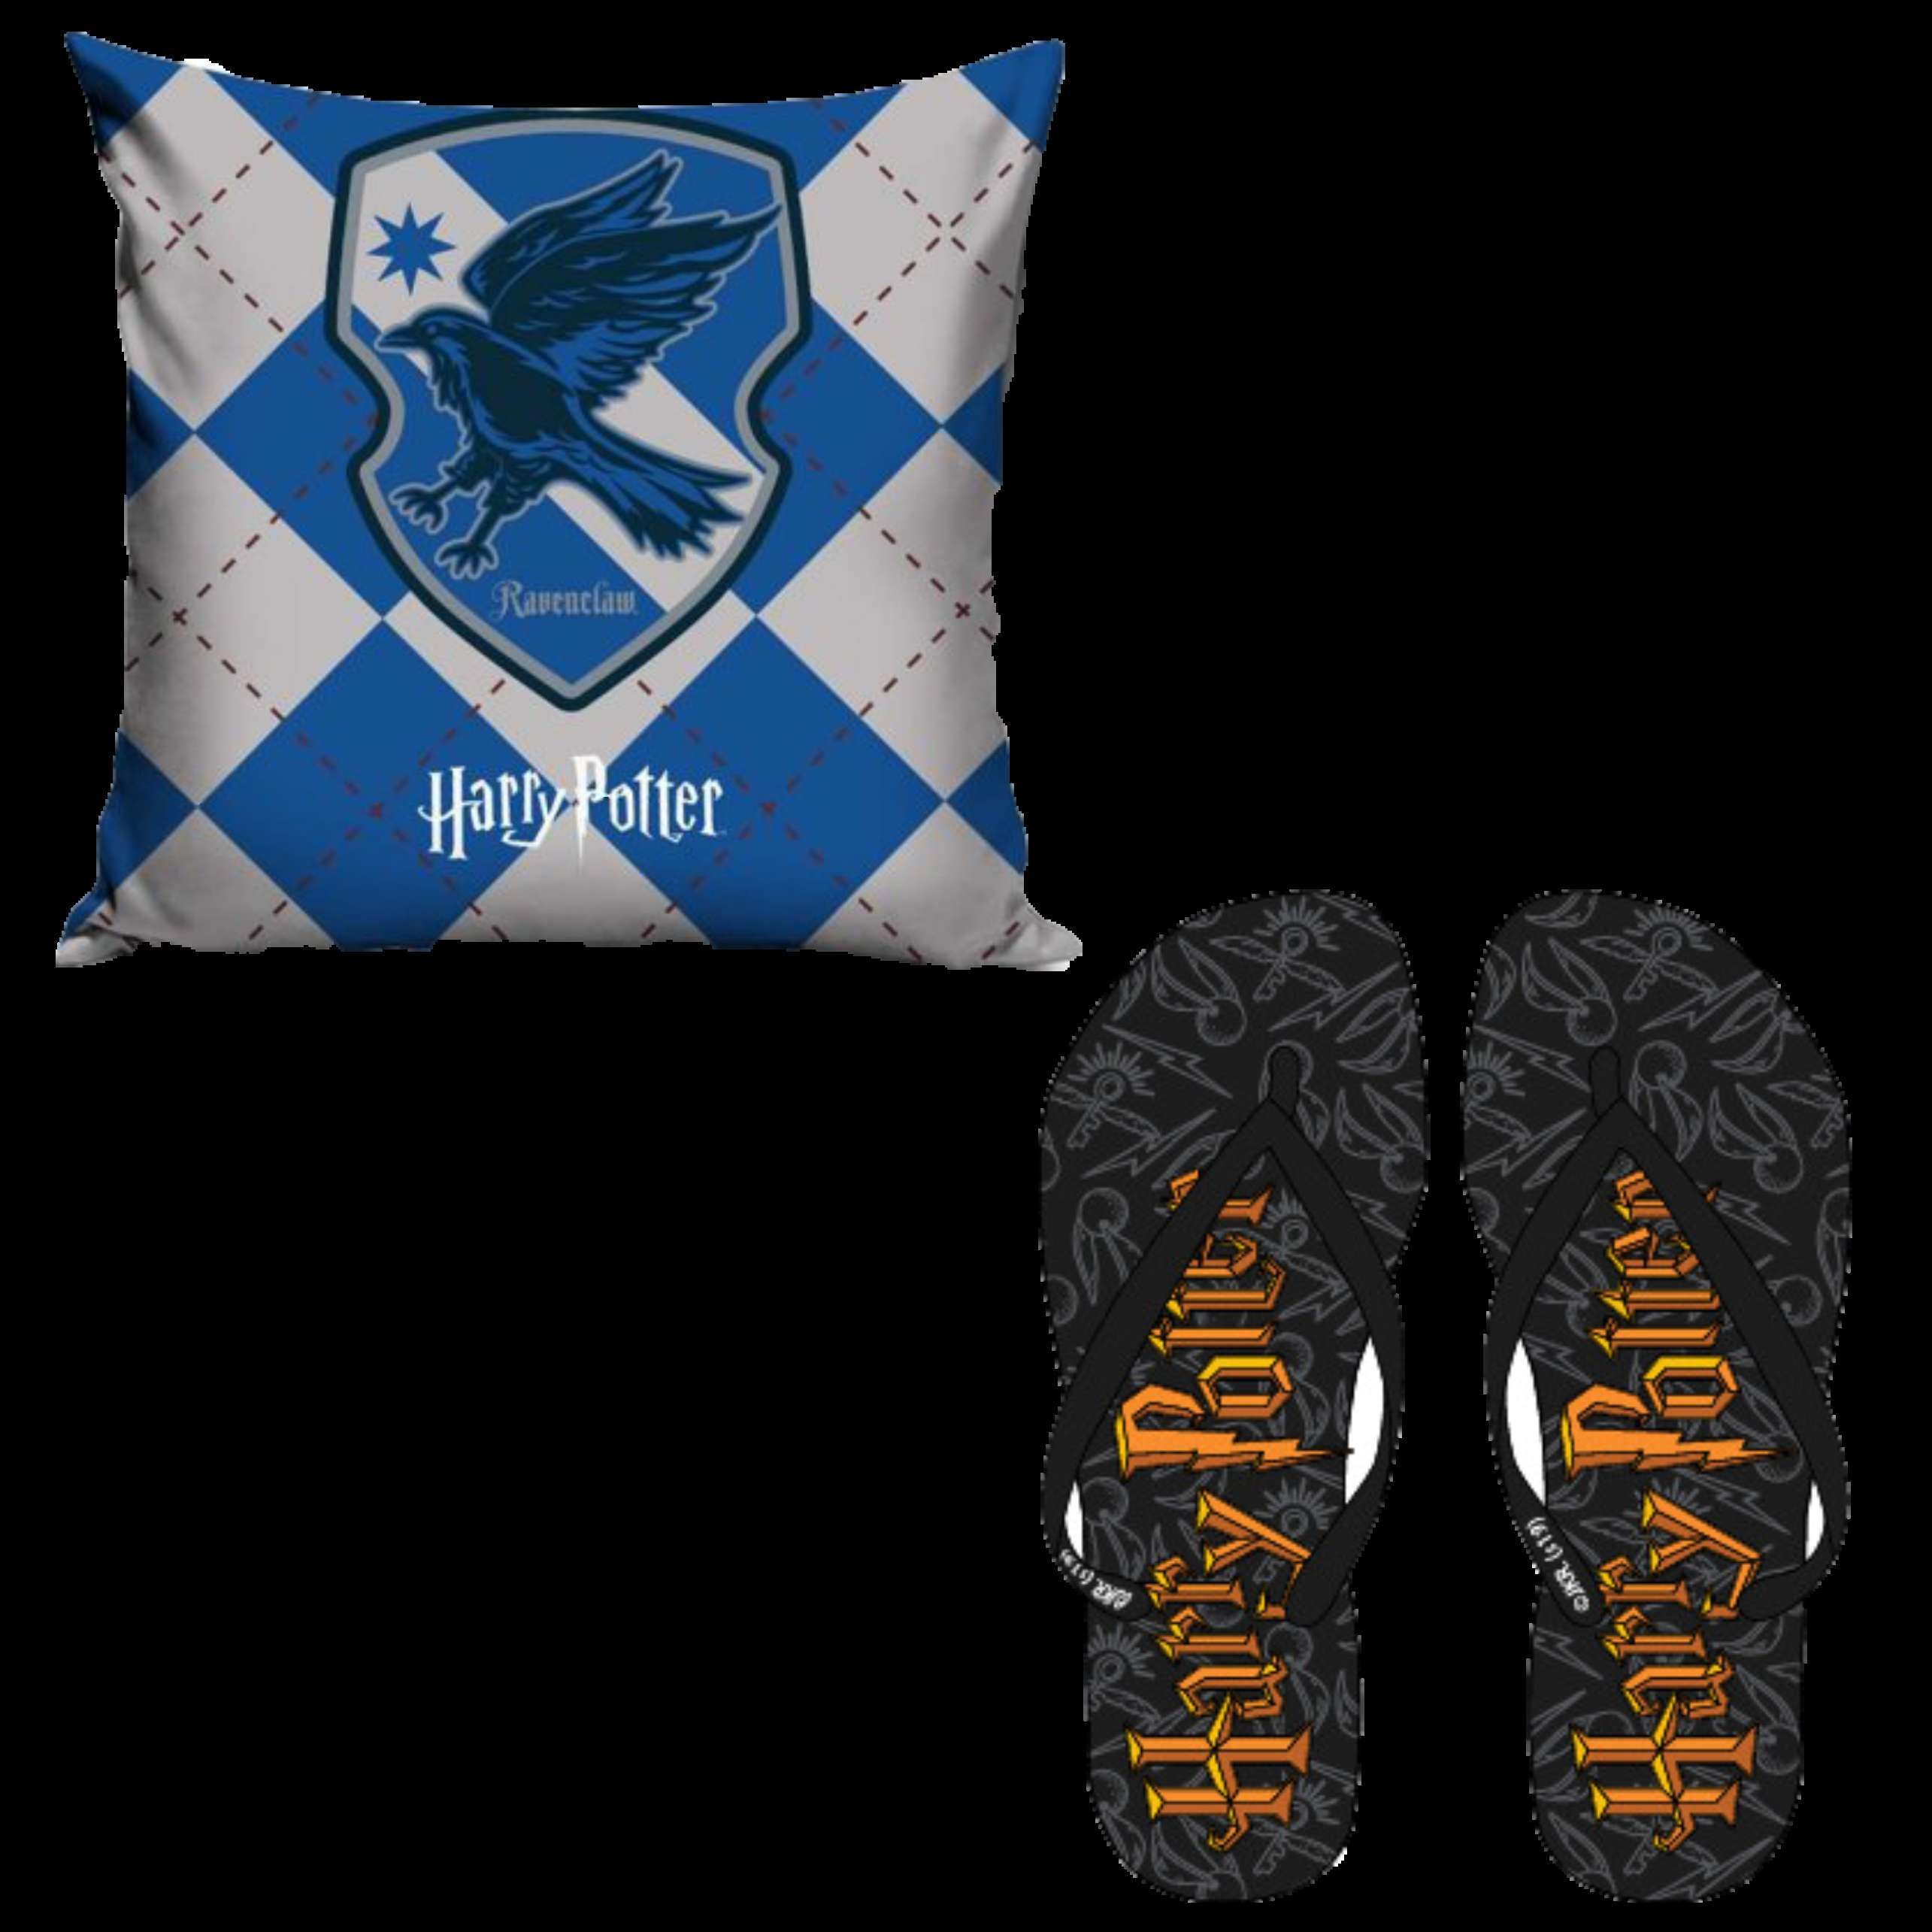 OFFICIAL WARNER BROS HARRY POTTER RAVENCLAW PILLOW CASE AND FLIP FLOPS